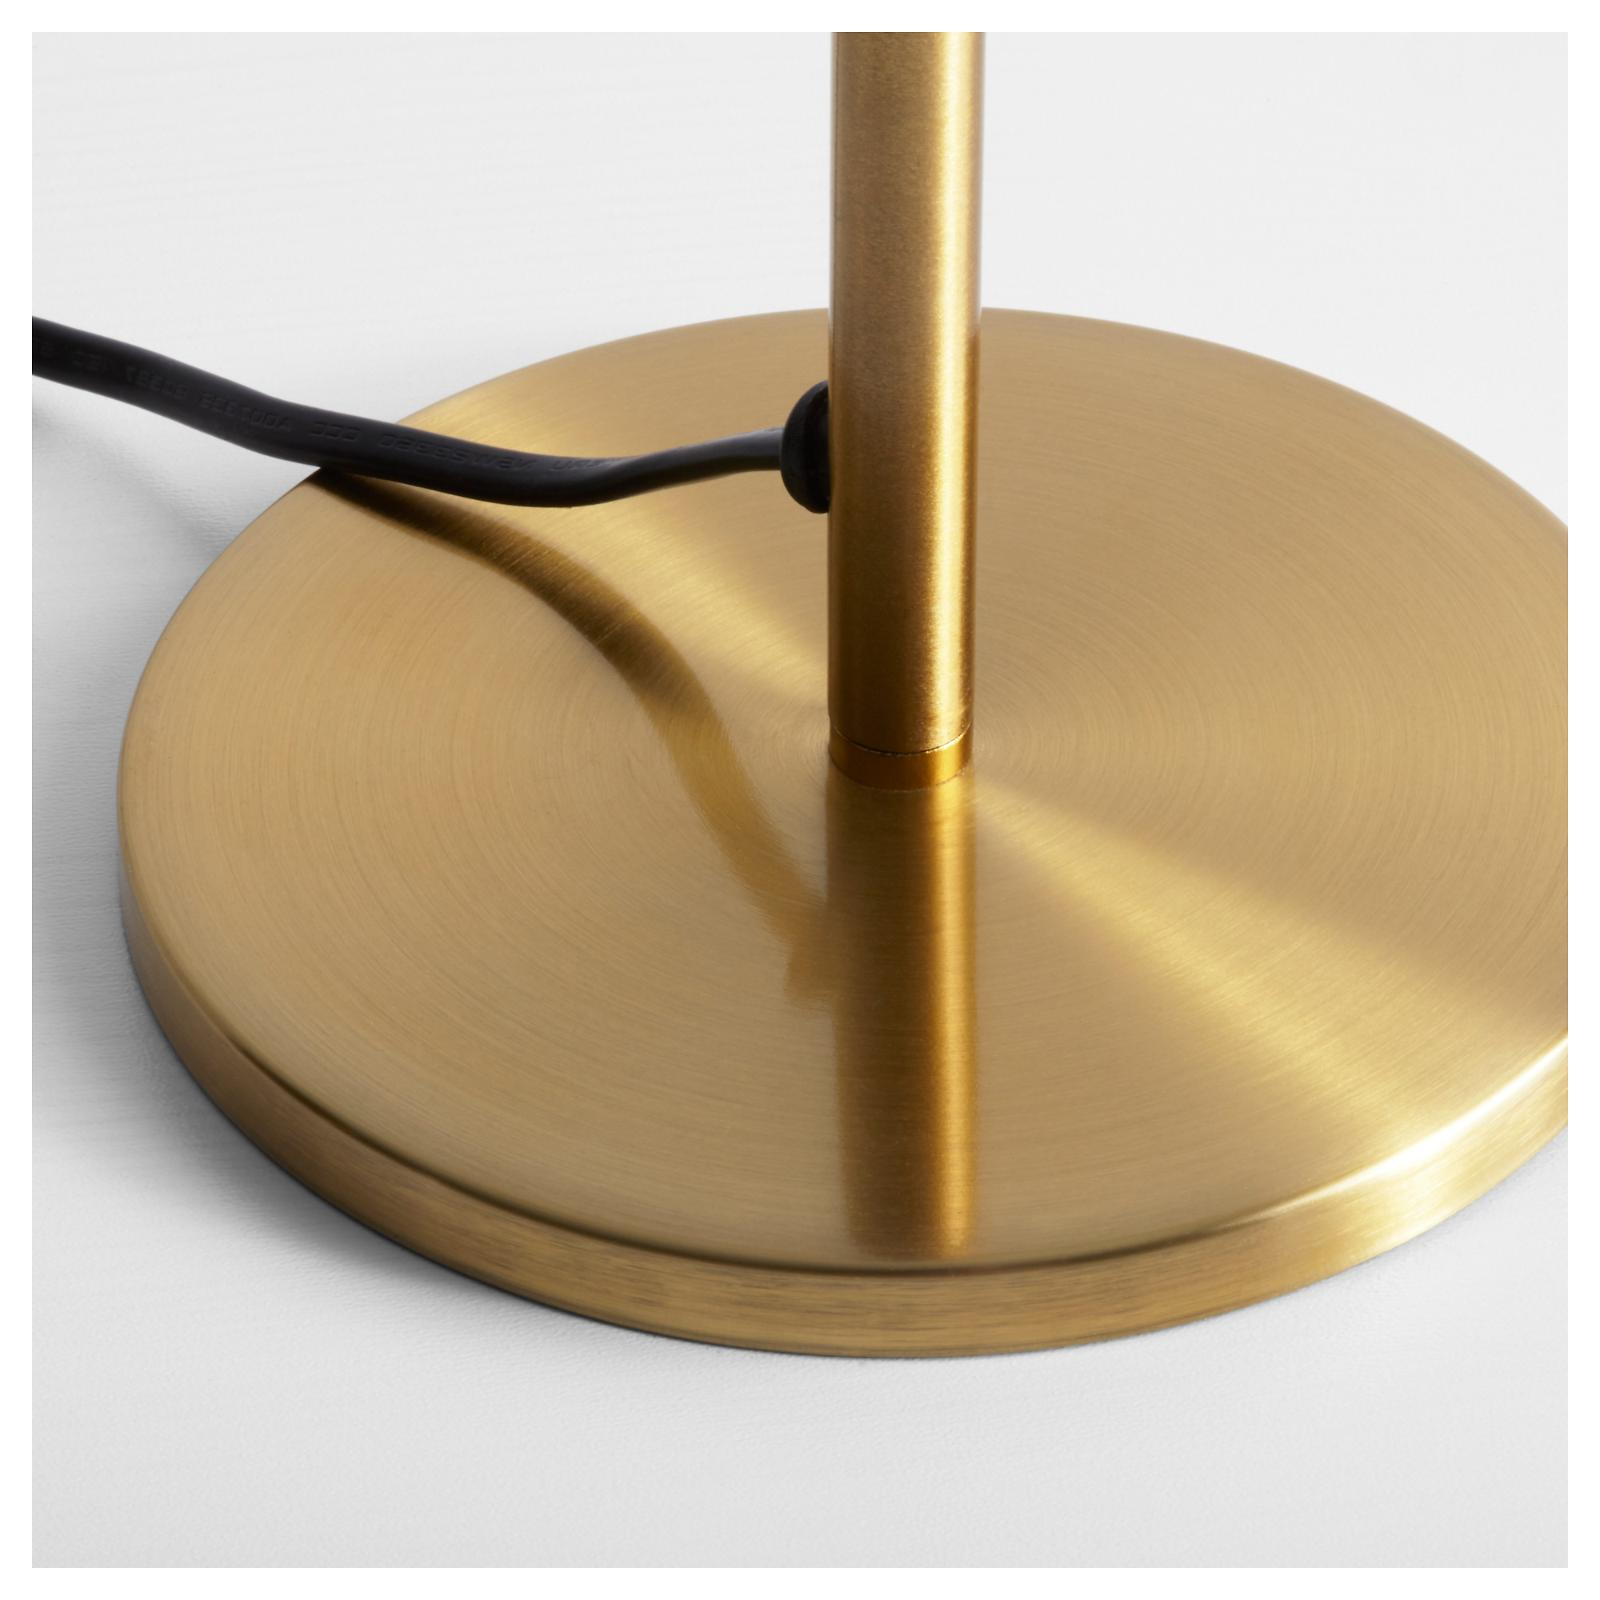 Ikea Table Base Brass Color 503.027.50 NEW